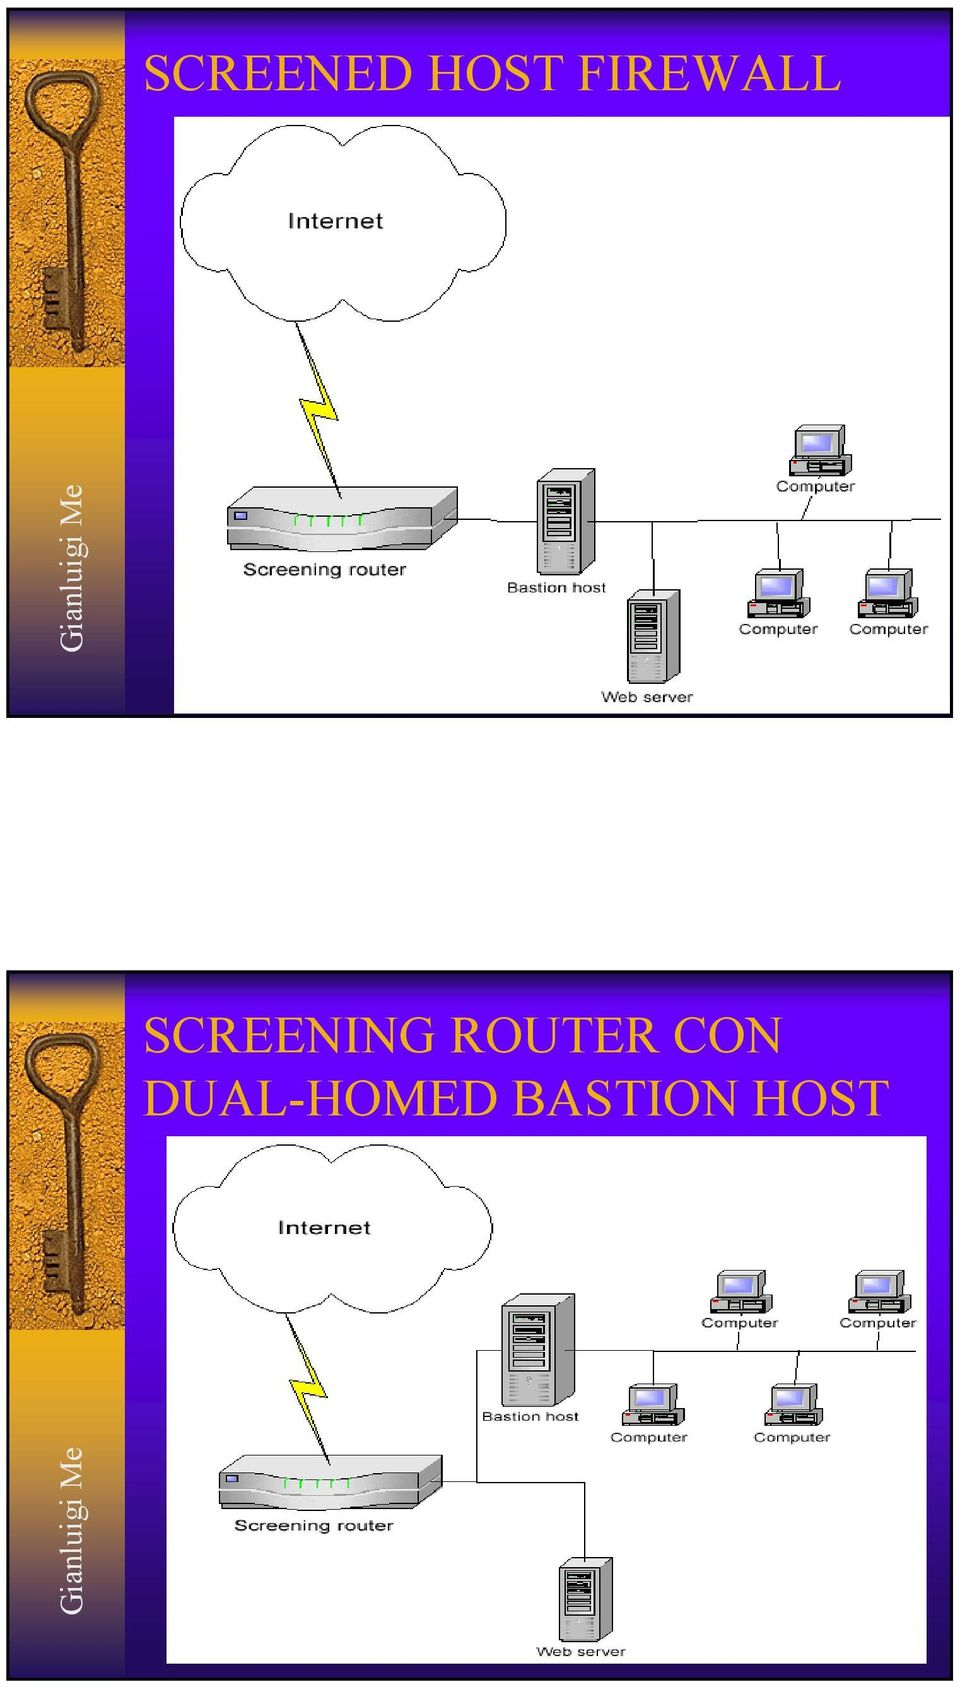 SCREENING ROUTER